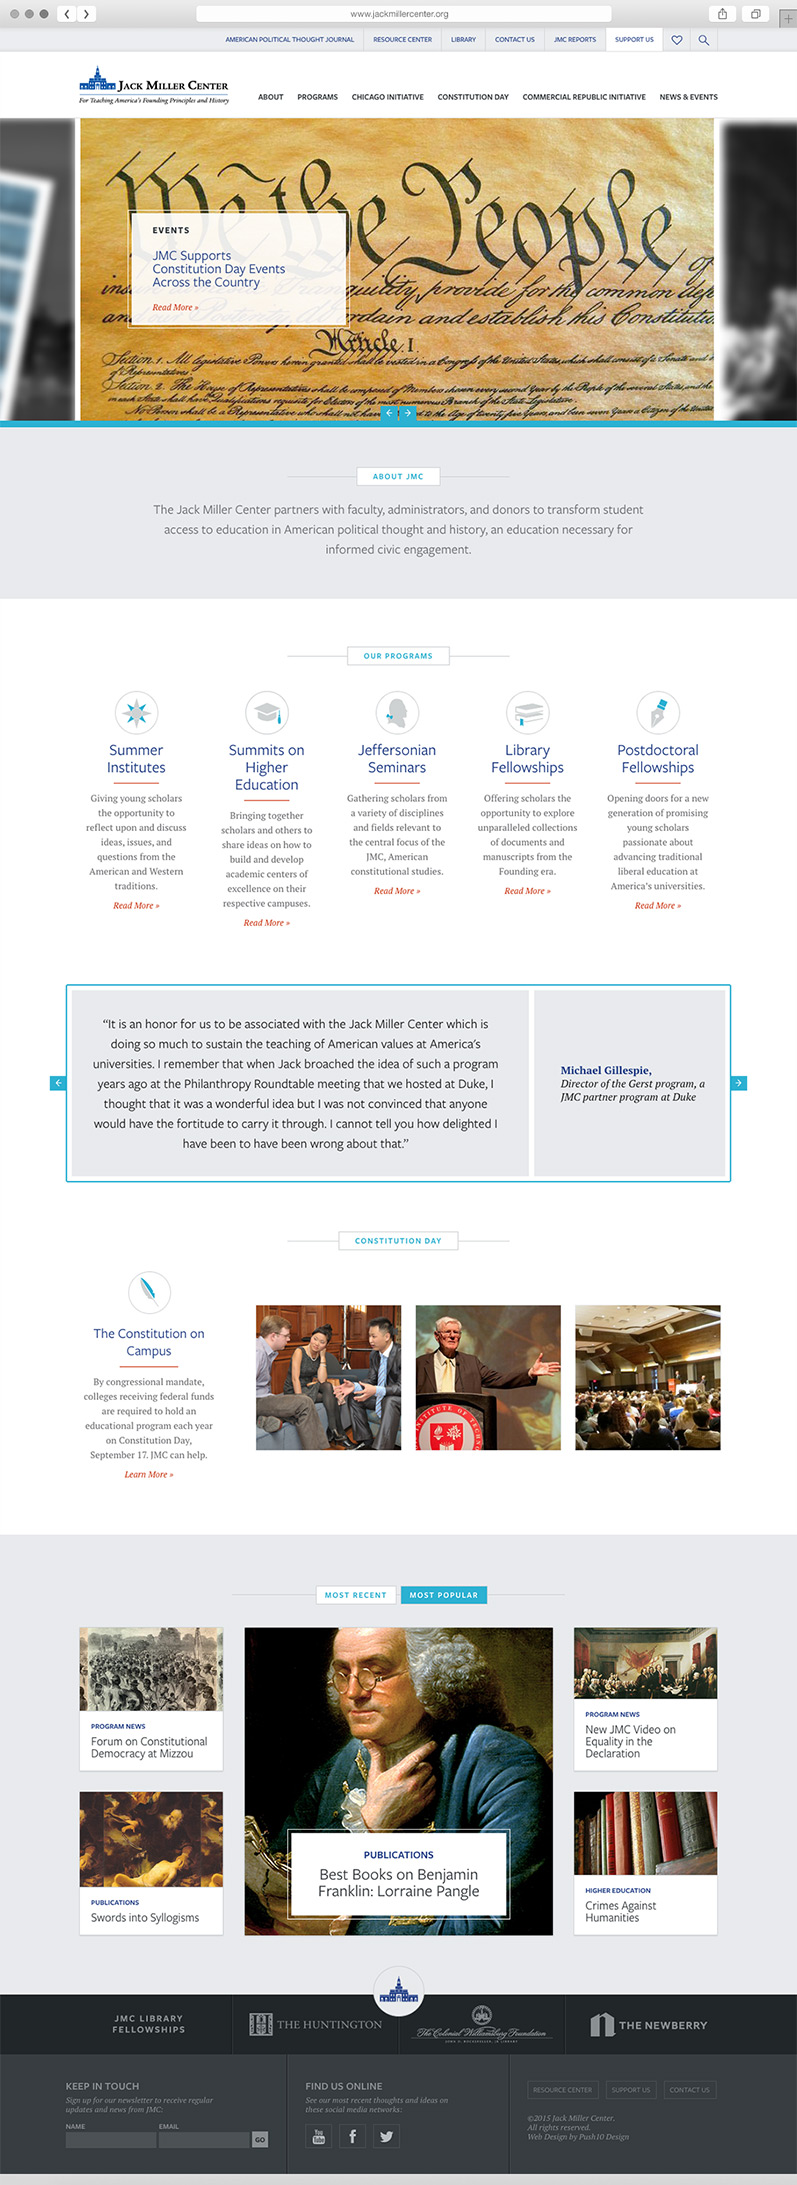 Custom WordPress Theme for Philadelphia Non-Profit Organization, push10 website design, push10 branding, push10 web design, philadelphia web design, custom illustration, graphic design, jack miller center, jack miller center website, responsive web design